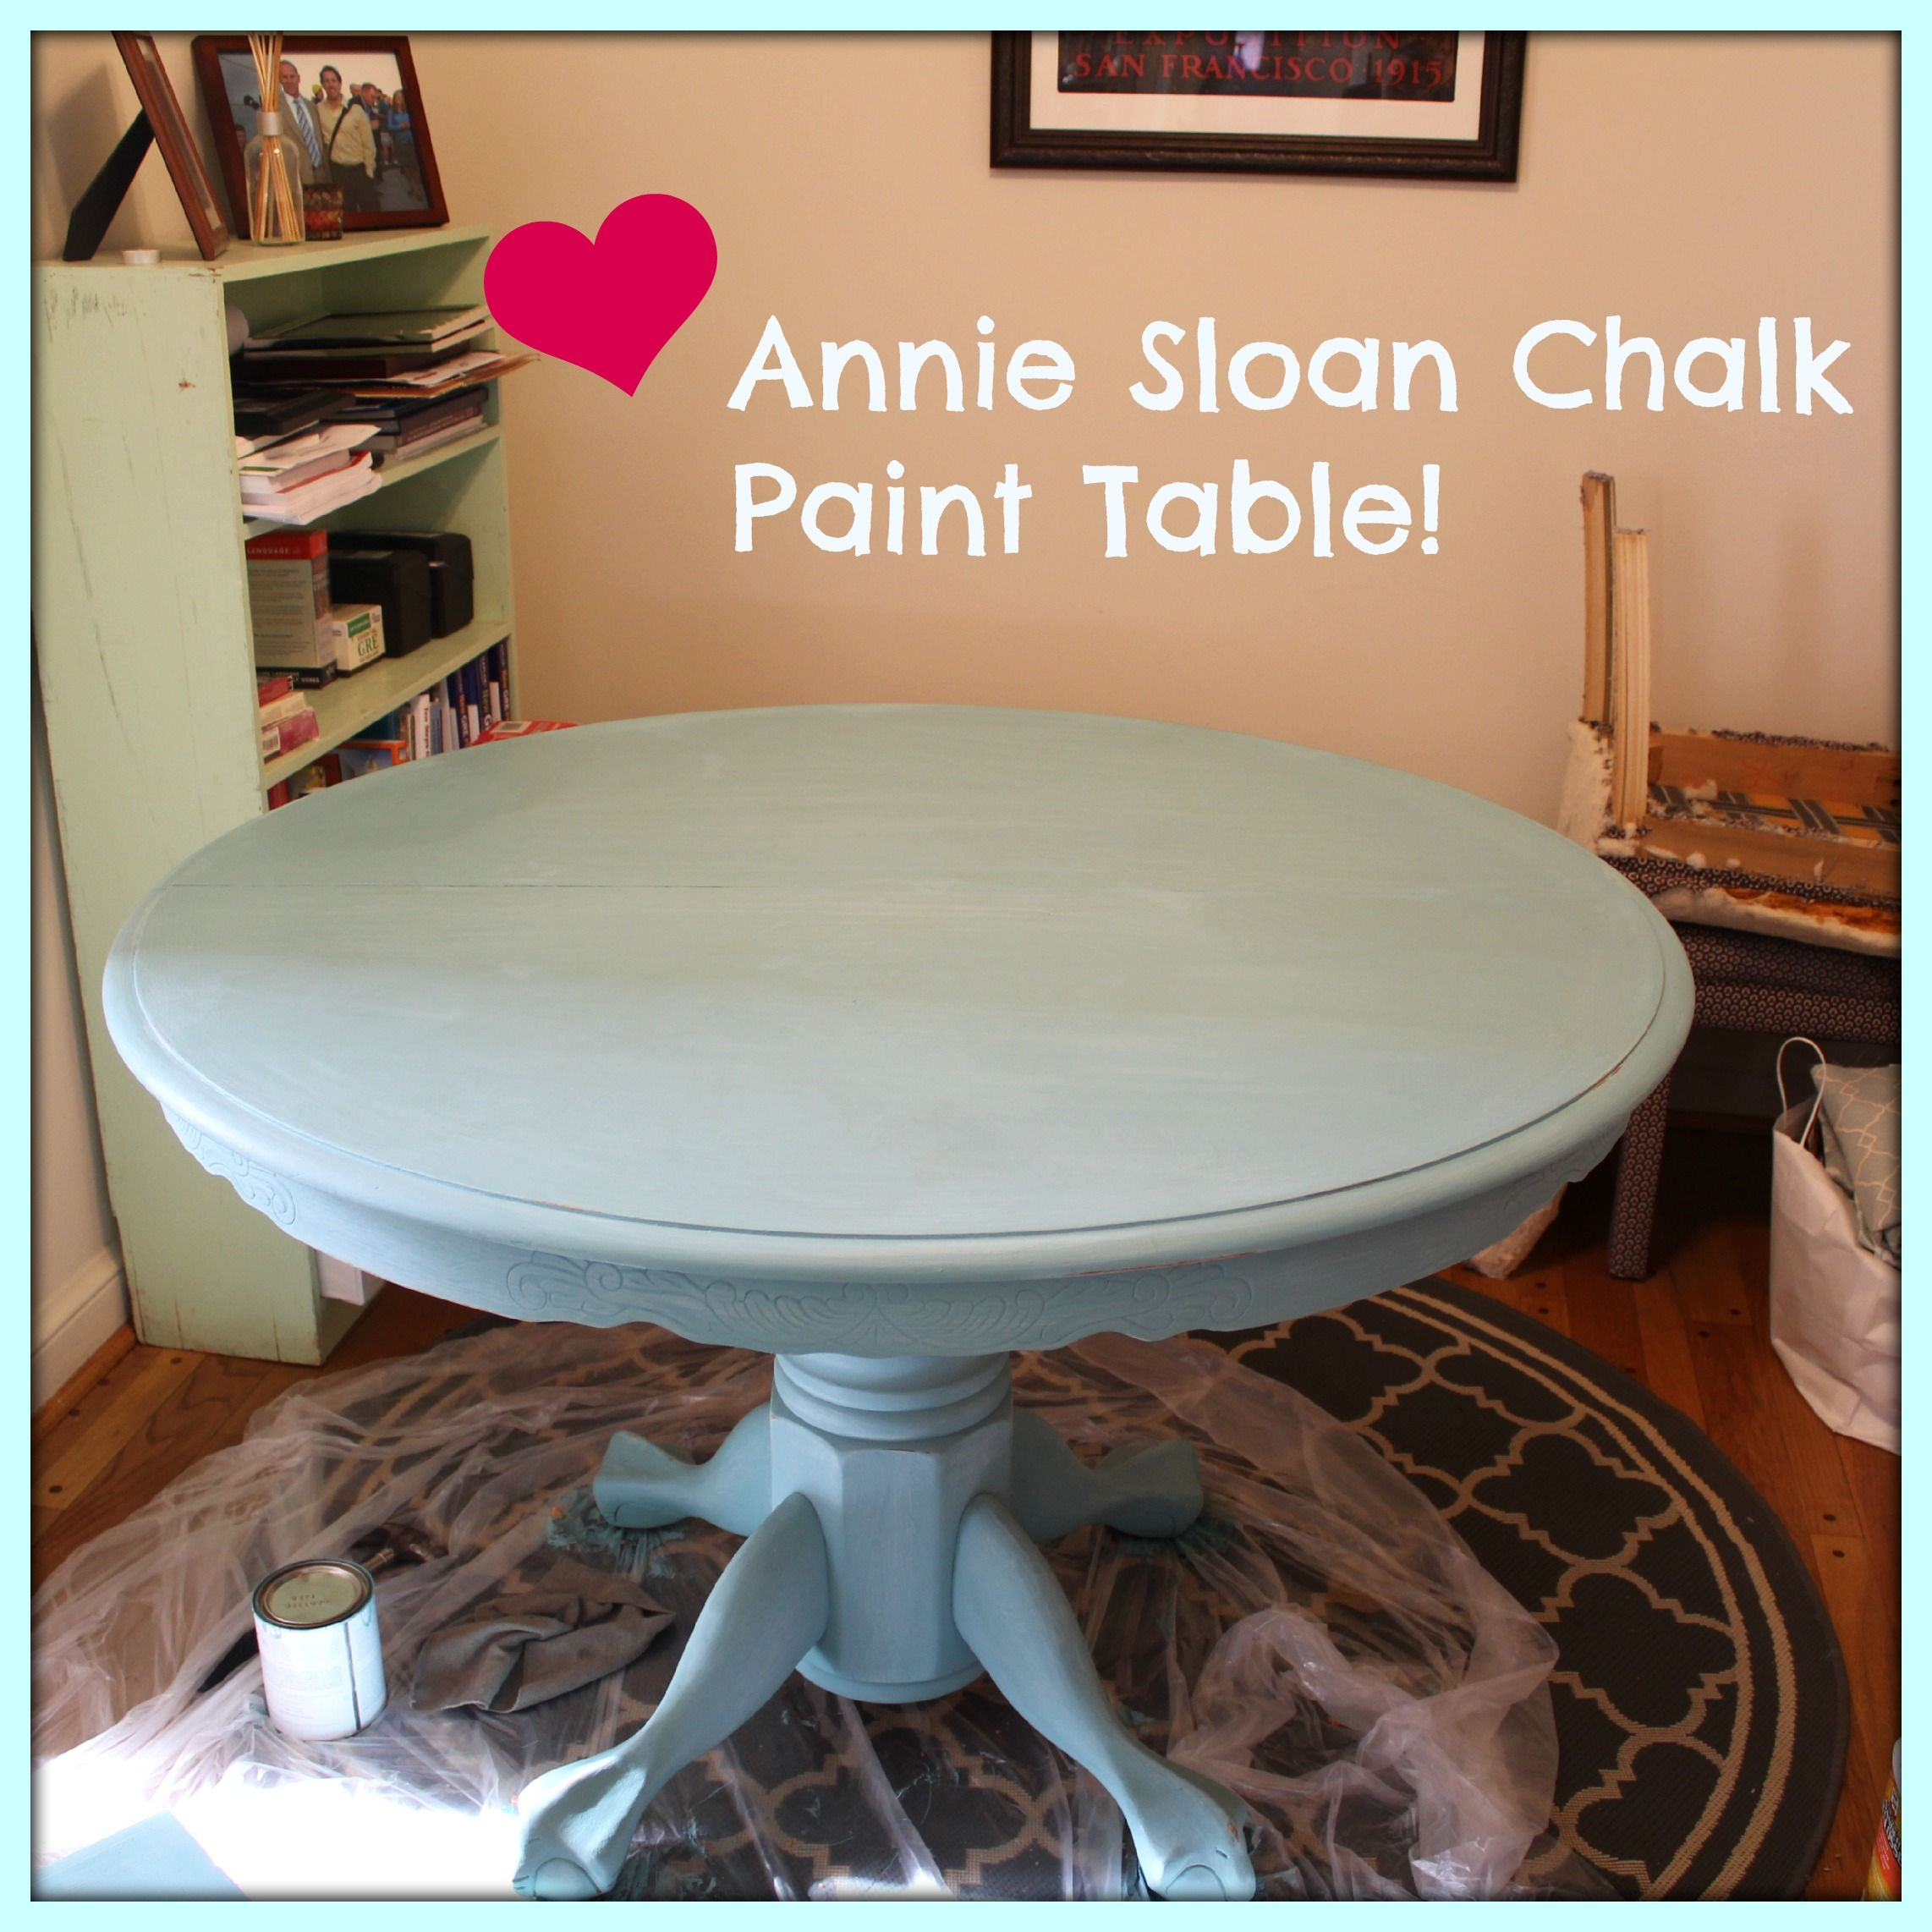 Chalk Paint Dining Room Table Chalk Paint Table Annie Sloan Chalk Paint An